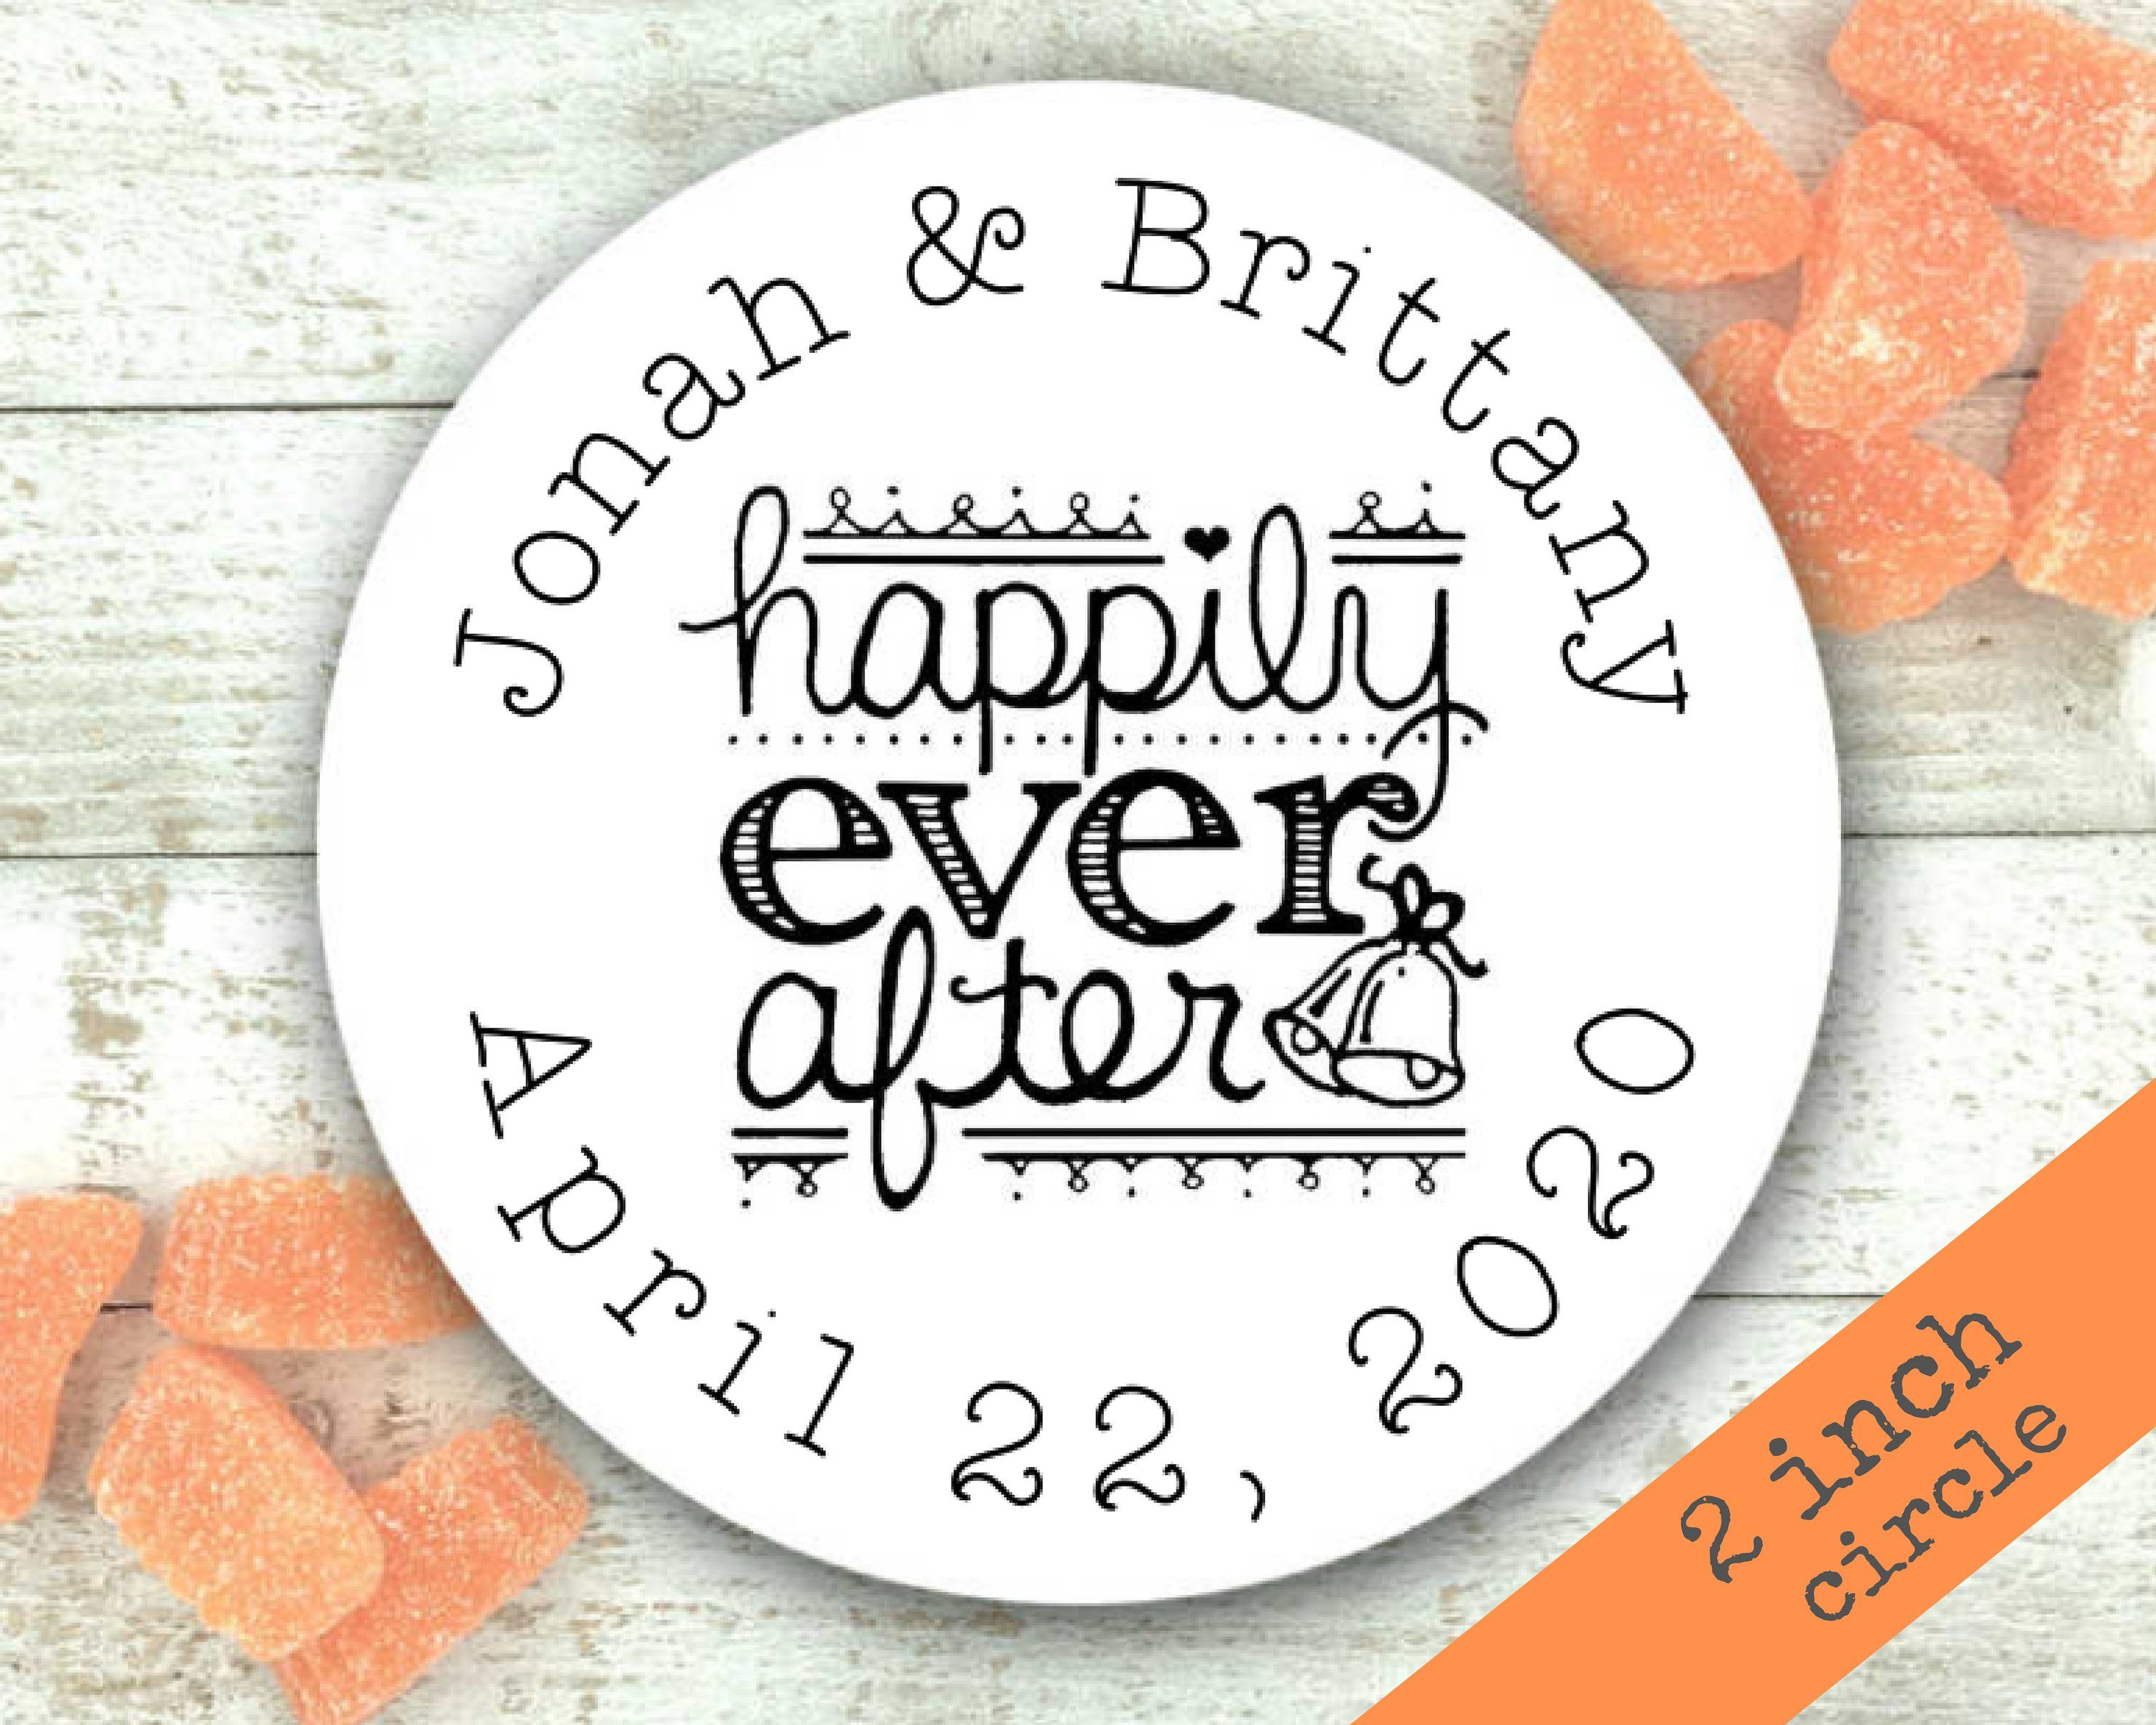 Personalized favor labels for wedding party shower 20 custom stickers 2 inches round happily ever after engagement party favor ideas clementine